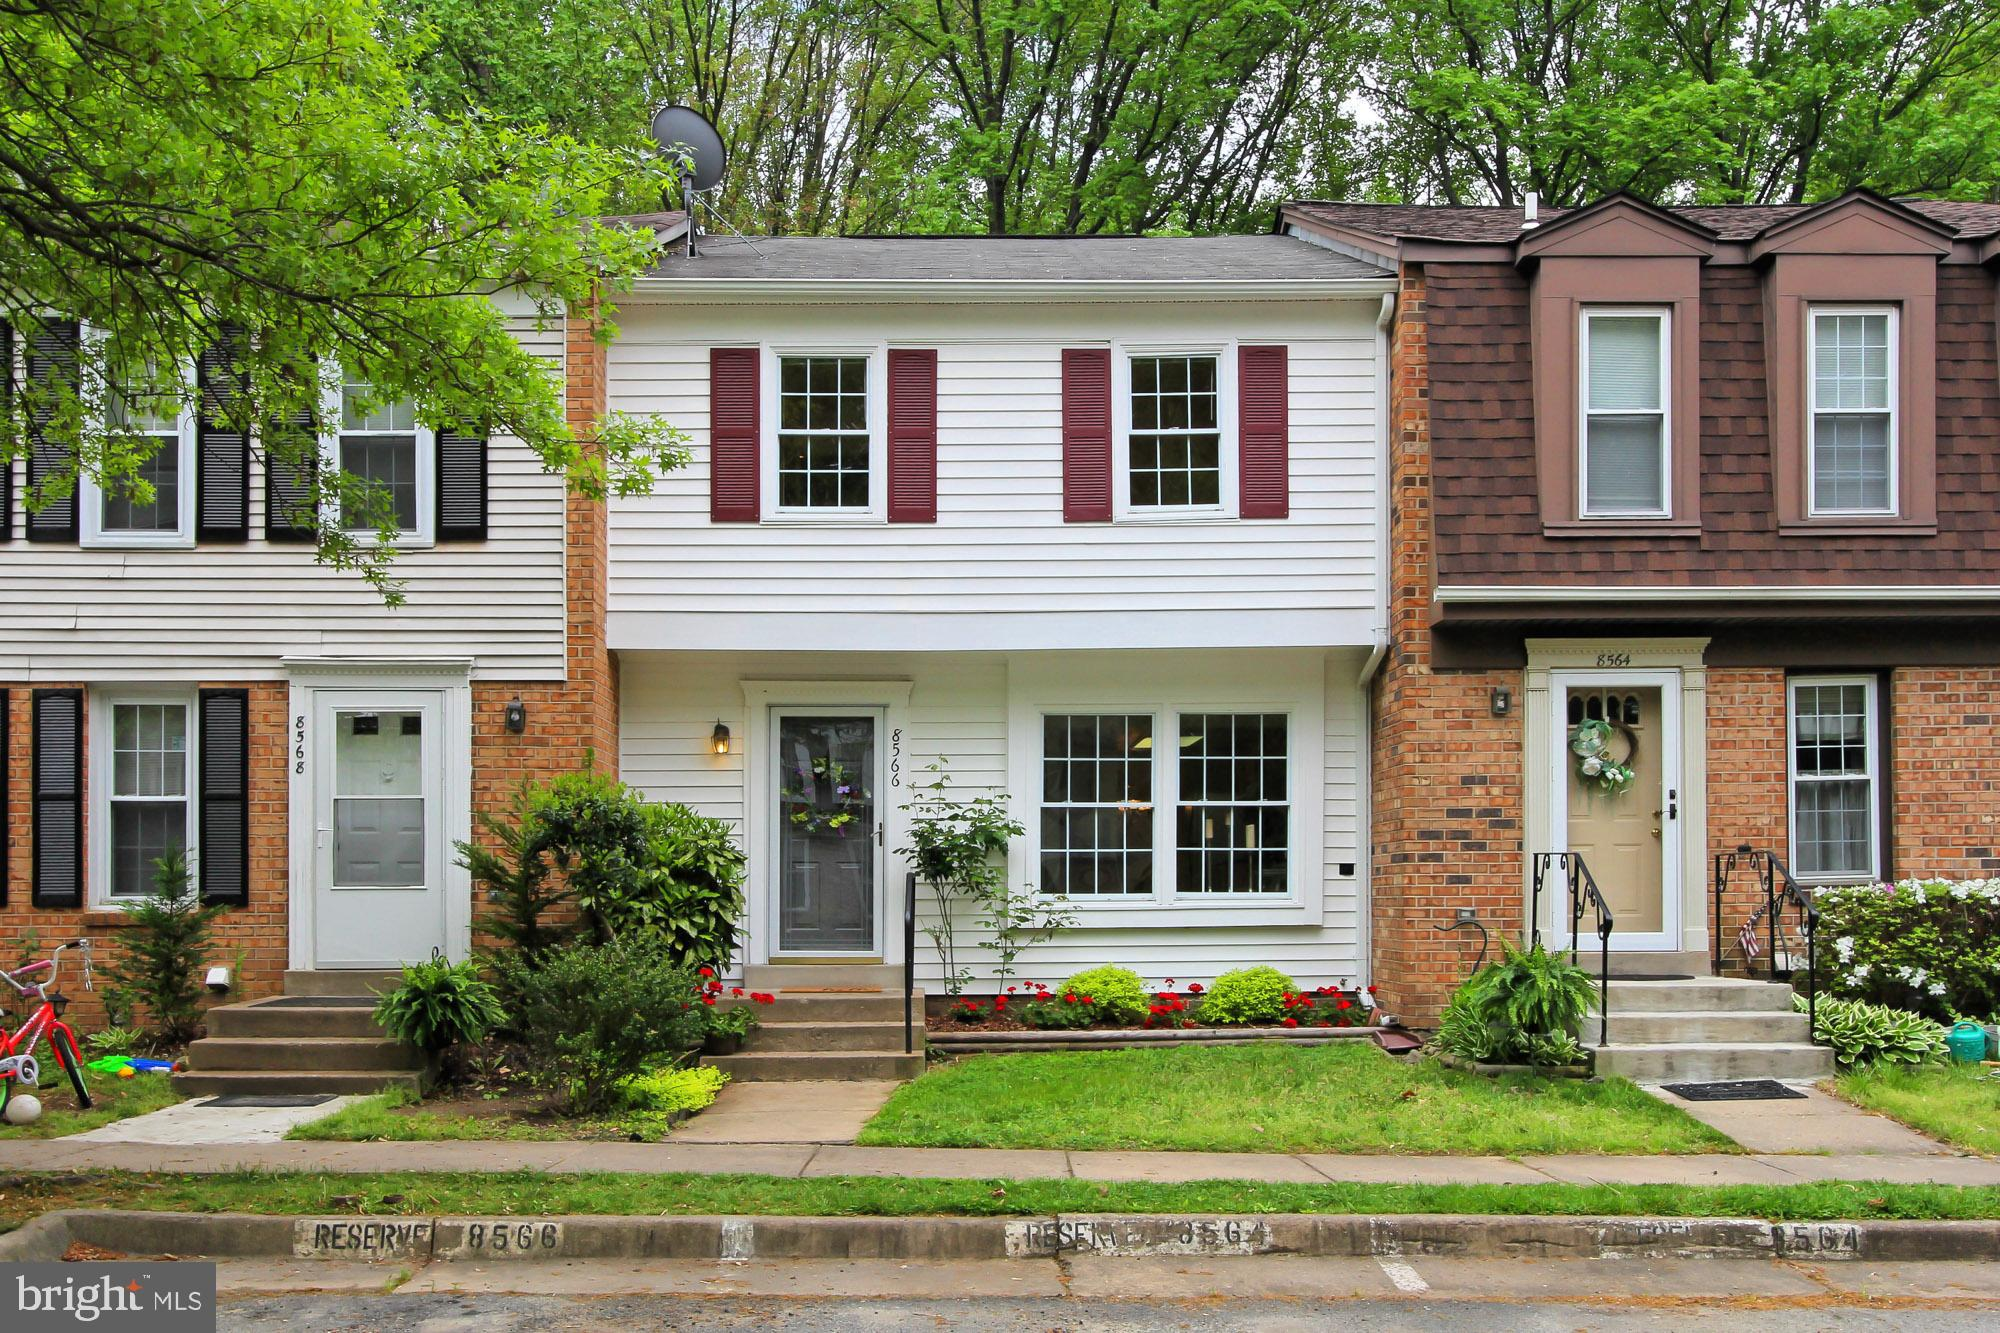 CONTRACT FELL THROUGH, BACK ON MARKET! Three bed two bath TH backs to trees.  Hardwood floors on main and upper levels! Nice large Master bedroom! Kitchen with newer cabinets, granite countertop and big picture window with table space.  Huge basement room with large storage room walks out to fenced back yard, where the gate leads to the forest, paths anb playground.  West Springfield High School